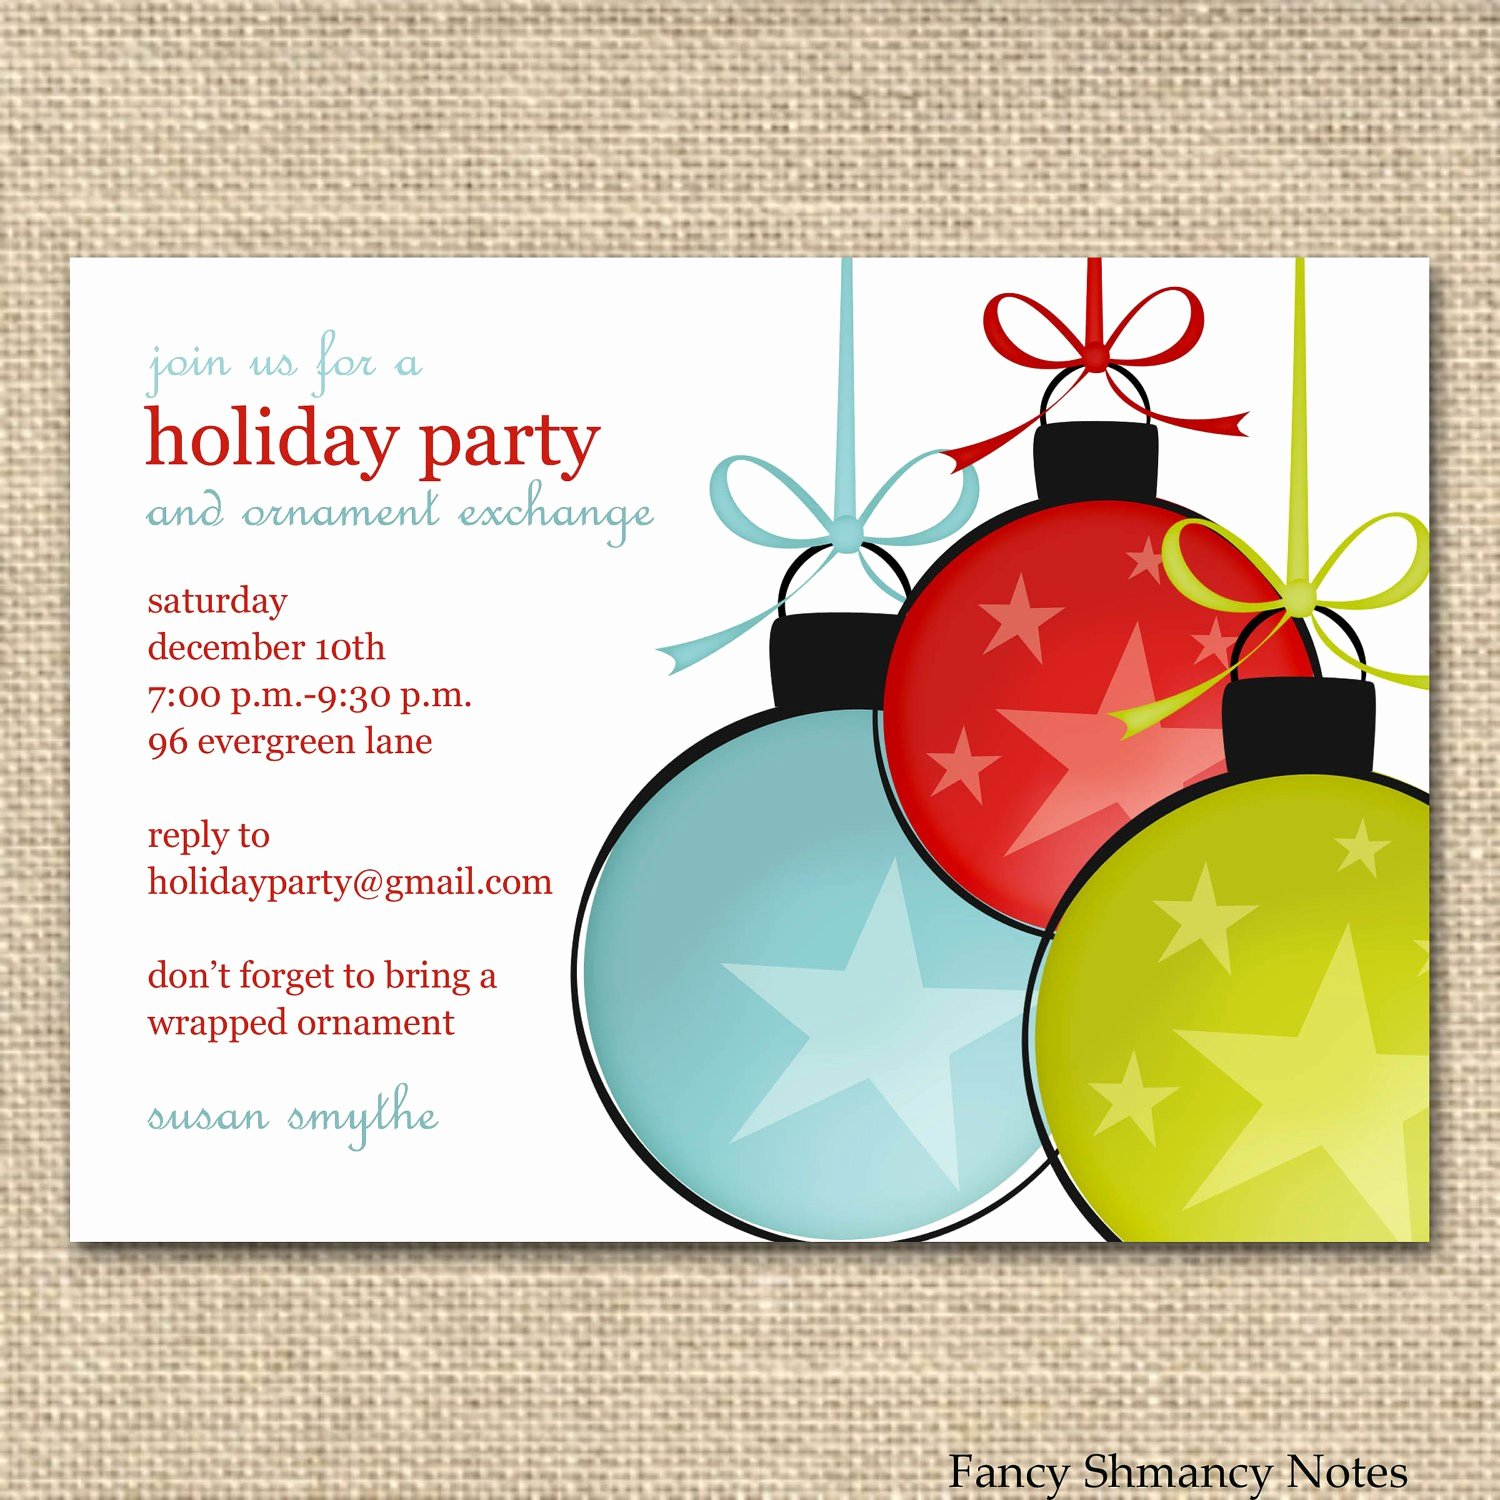 Party Invitation Email Template New Invitation Templates for Party New Holiday Party Email